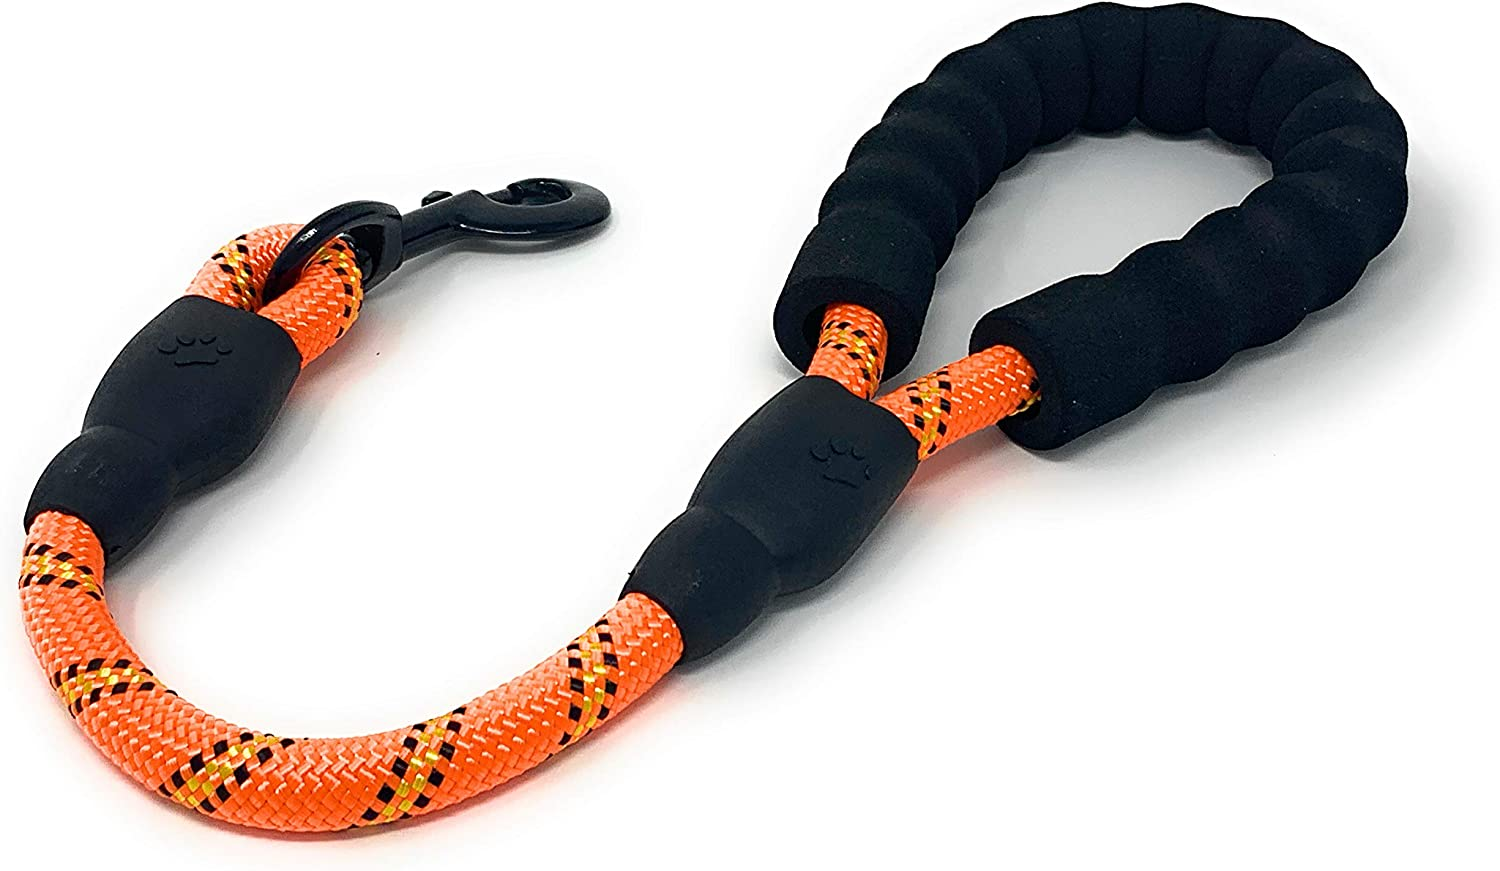 STJ Company Short Training Traffic Leash for Dogs l Teach Them to Walk Without Pulling l 18 Inch Rock Climbing Rope with Swivel Metal Snap-Bolt l Take Your Pup Near Crowds